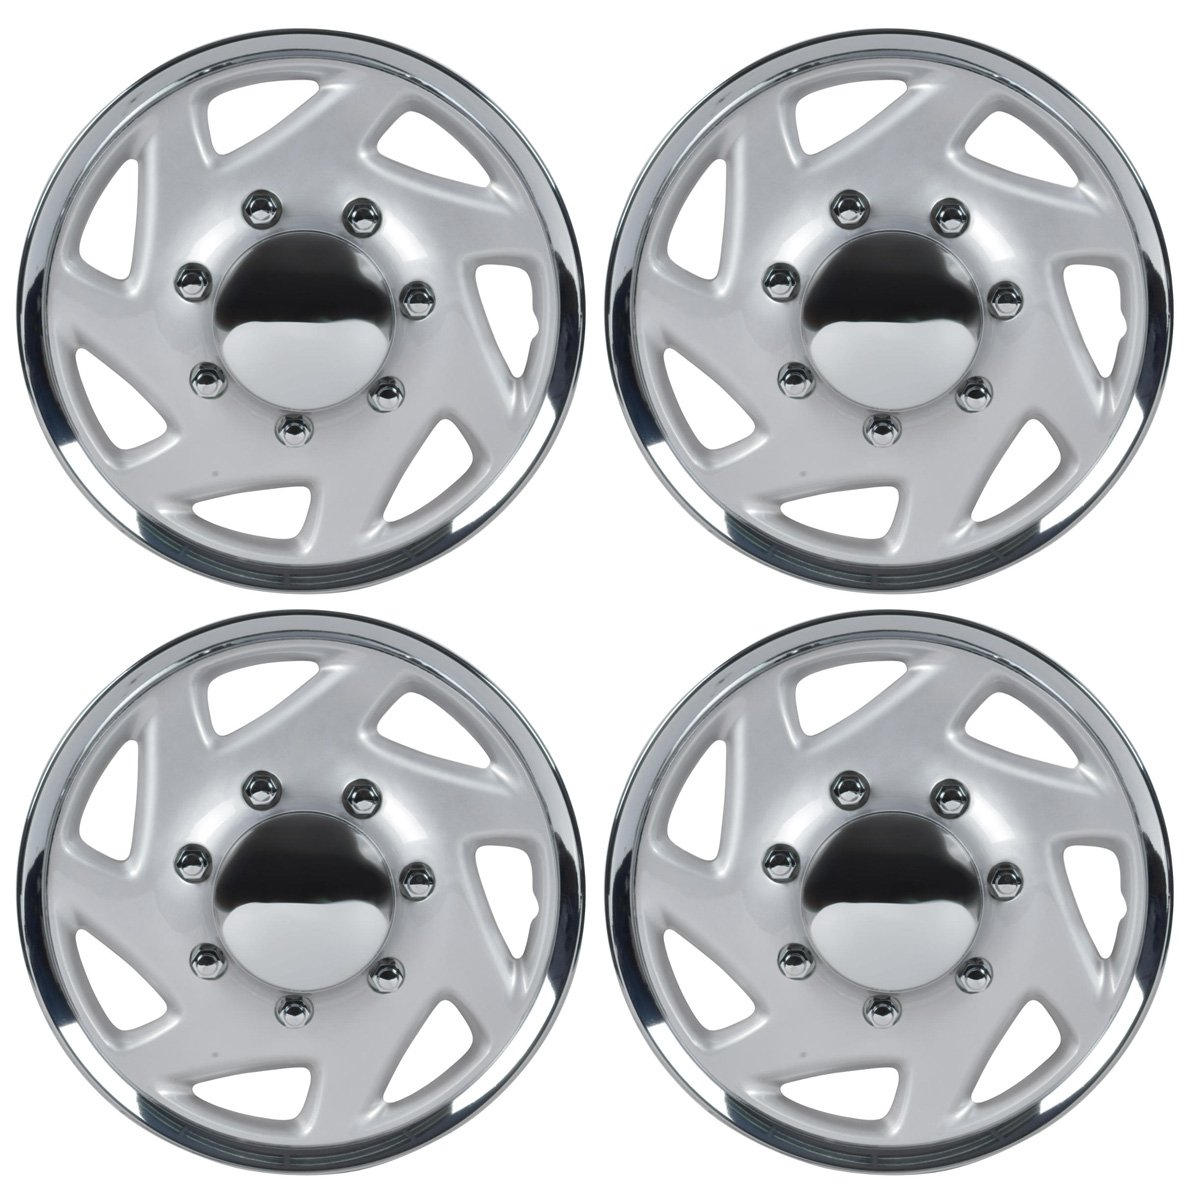 BDK Hubcaps Wheel Covers